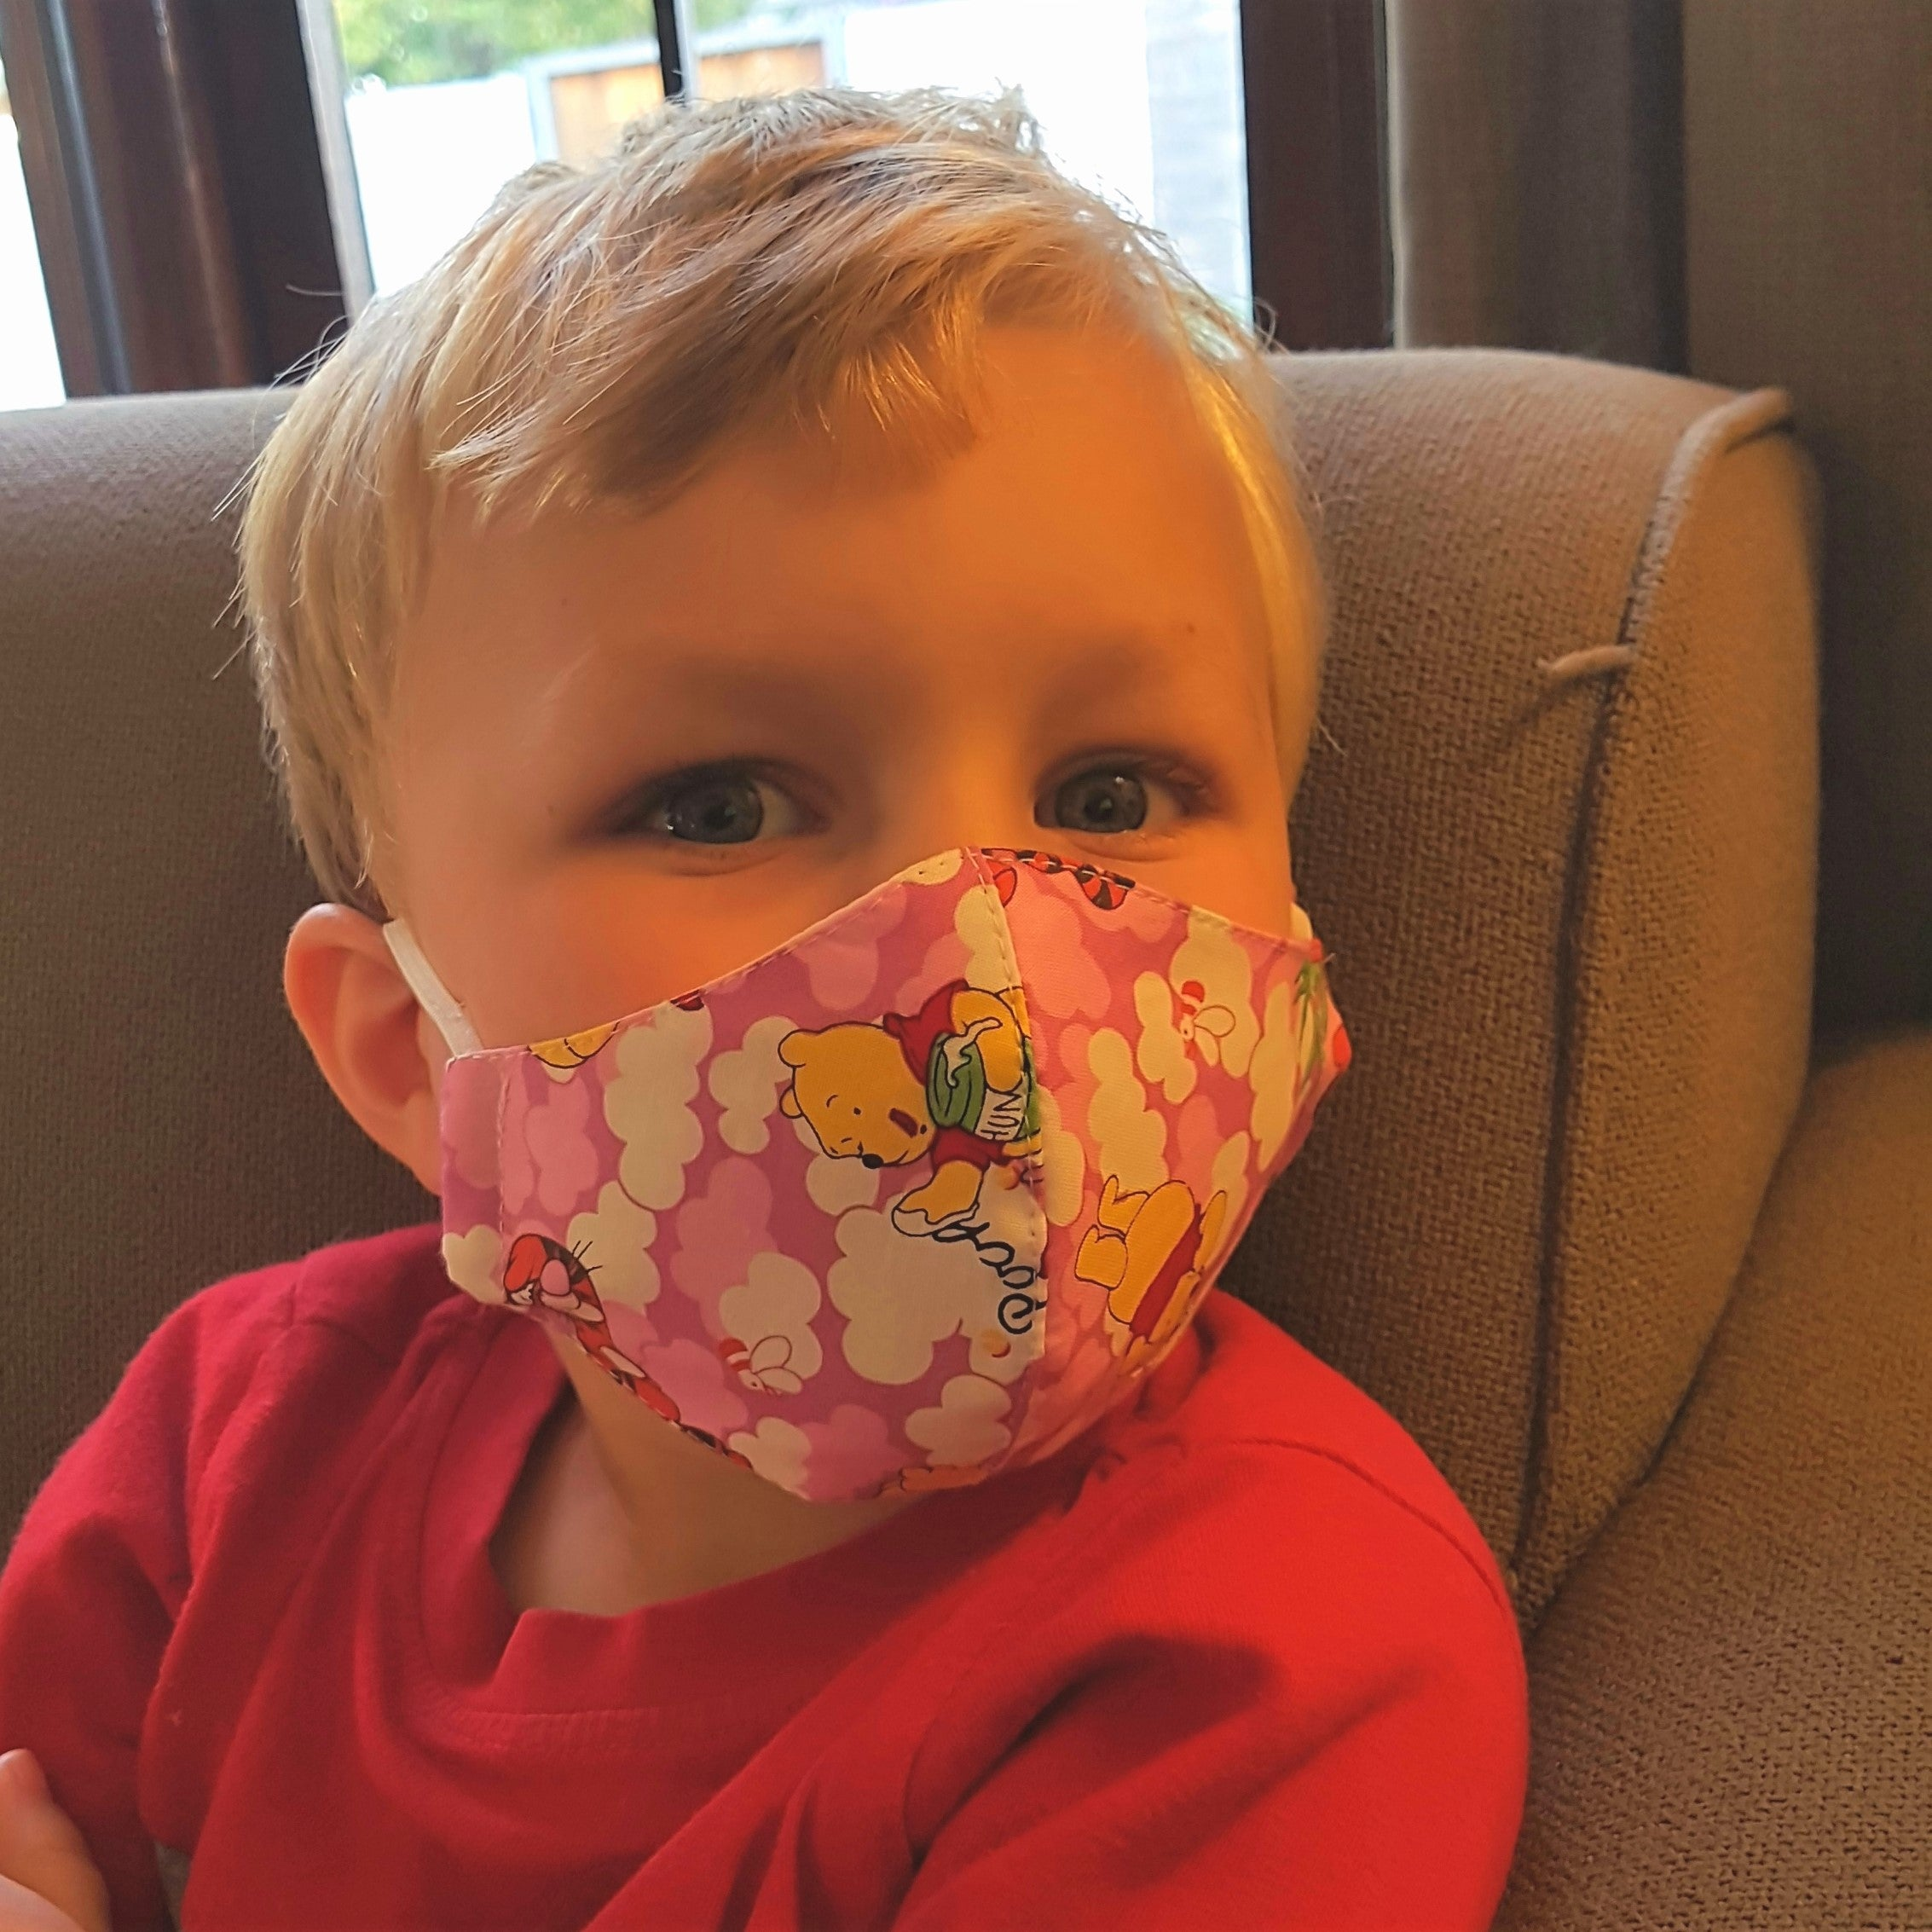 Cotton mask for infant - Winnie the Pooh